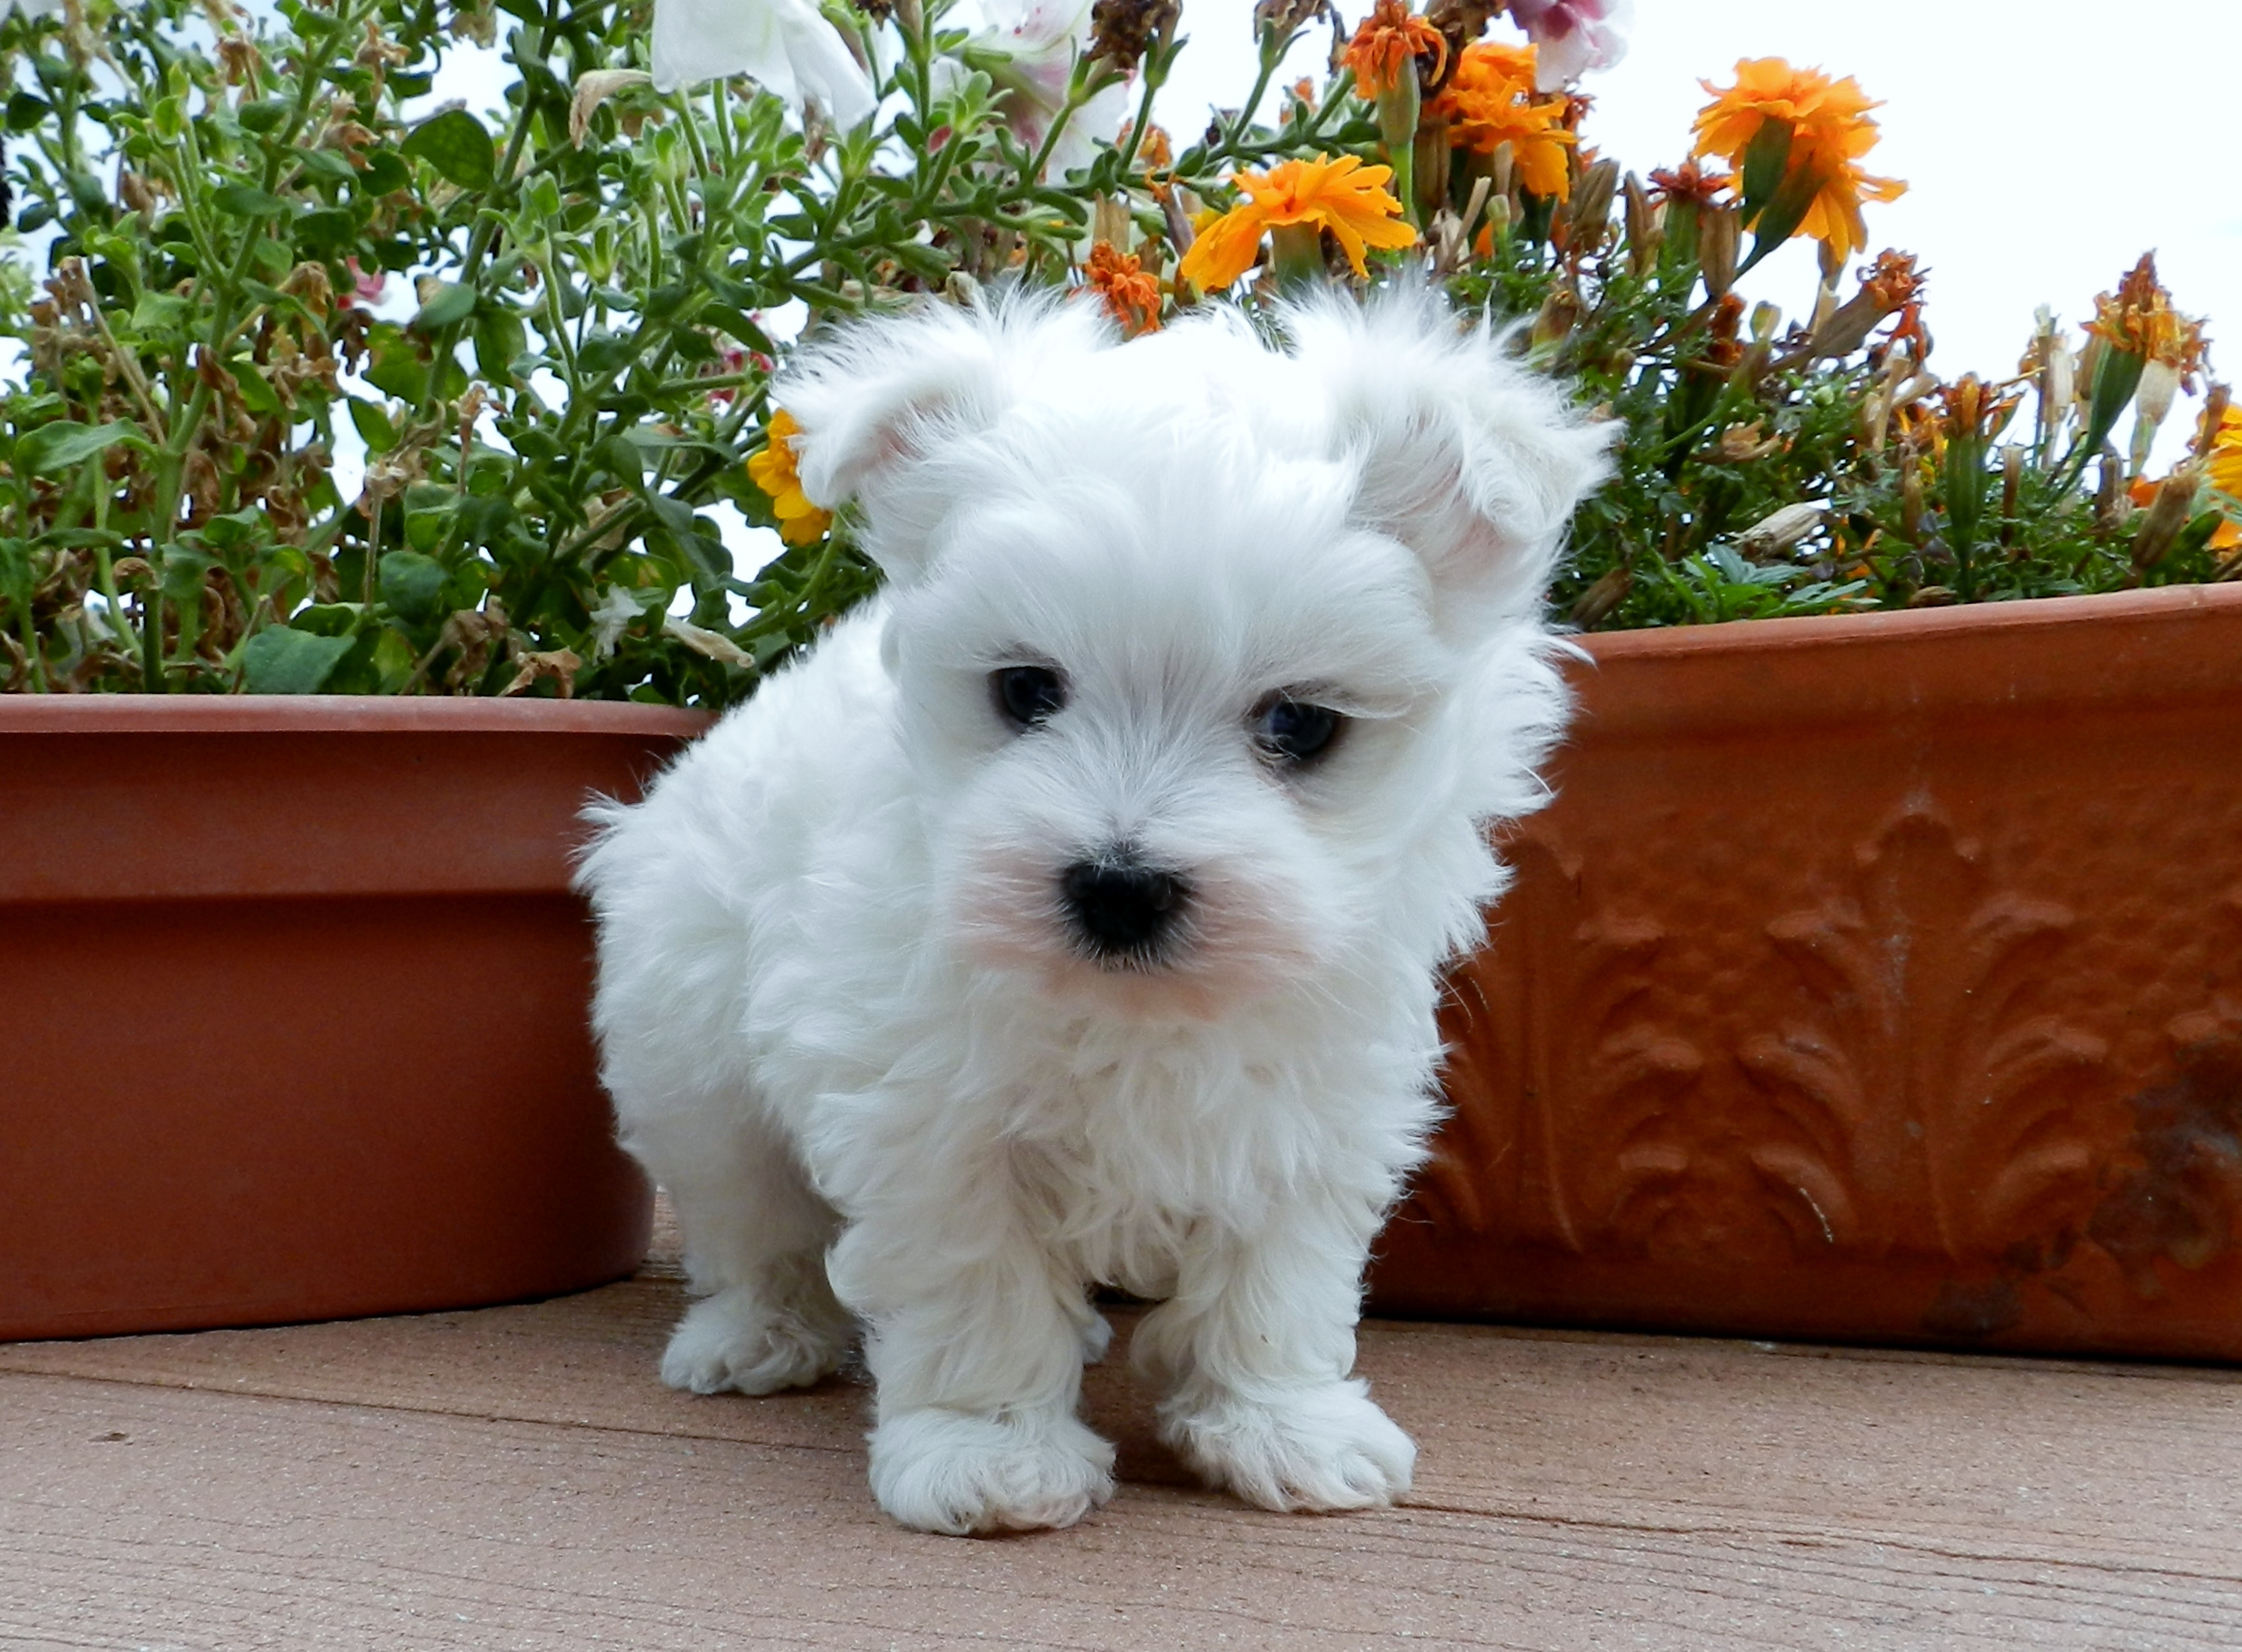 Akc Maltese Puppies For Sale In Oregon Females And Males Availablemaltese Puppies French Bulldog Puppies